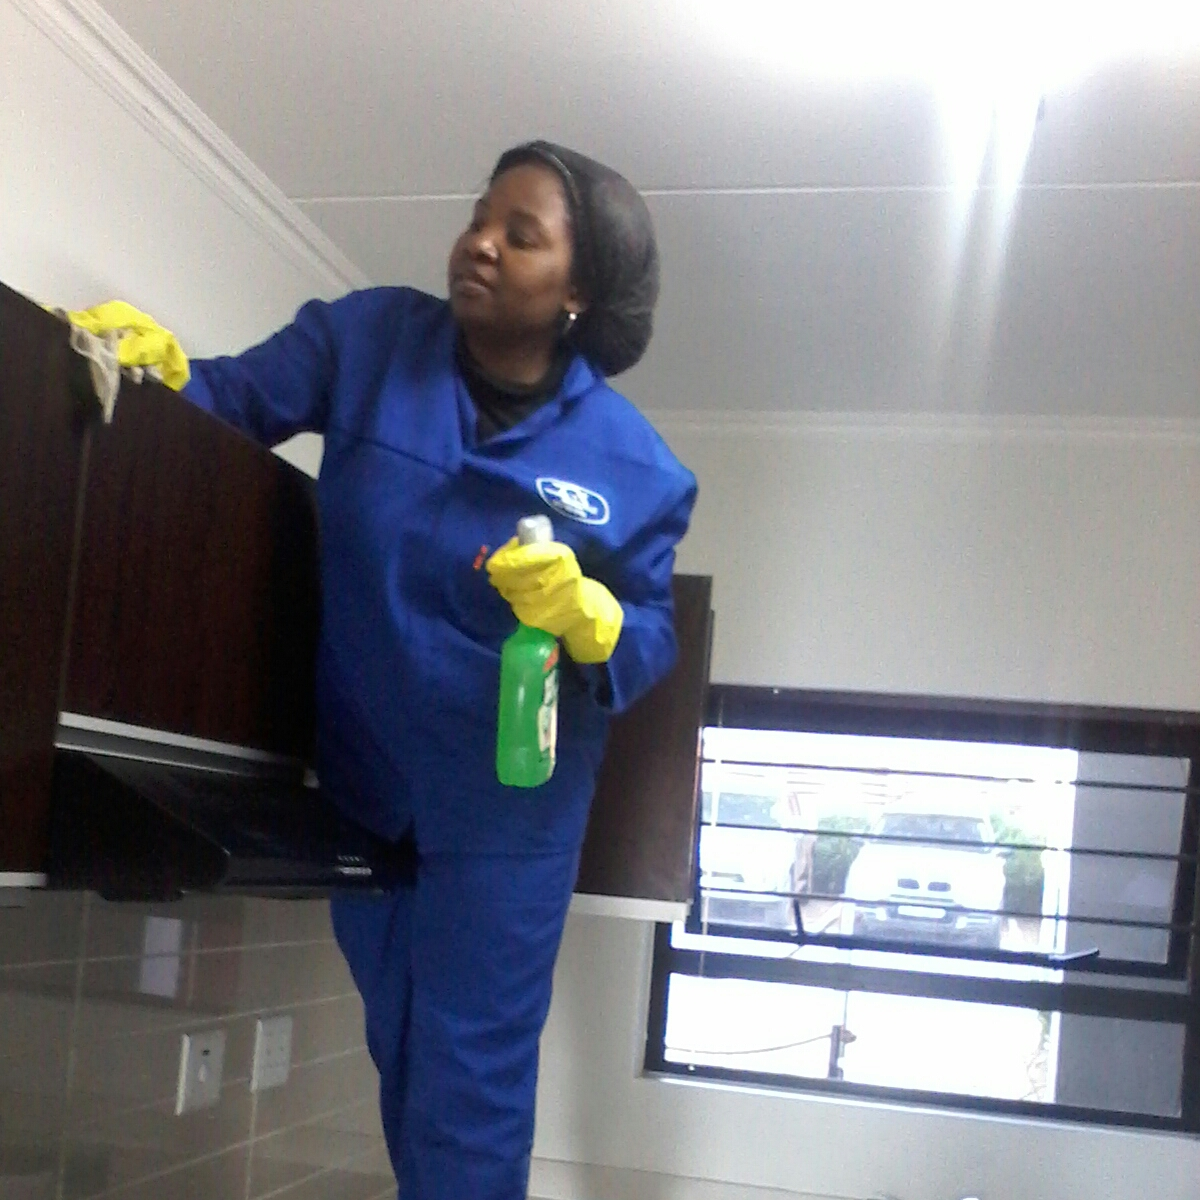 Pest Control In Boutte Mail: Pest Control And Cleaning Services